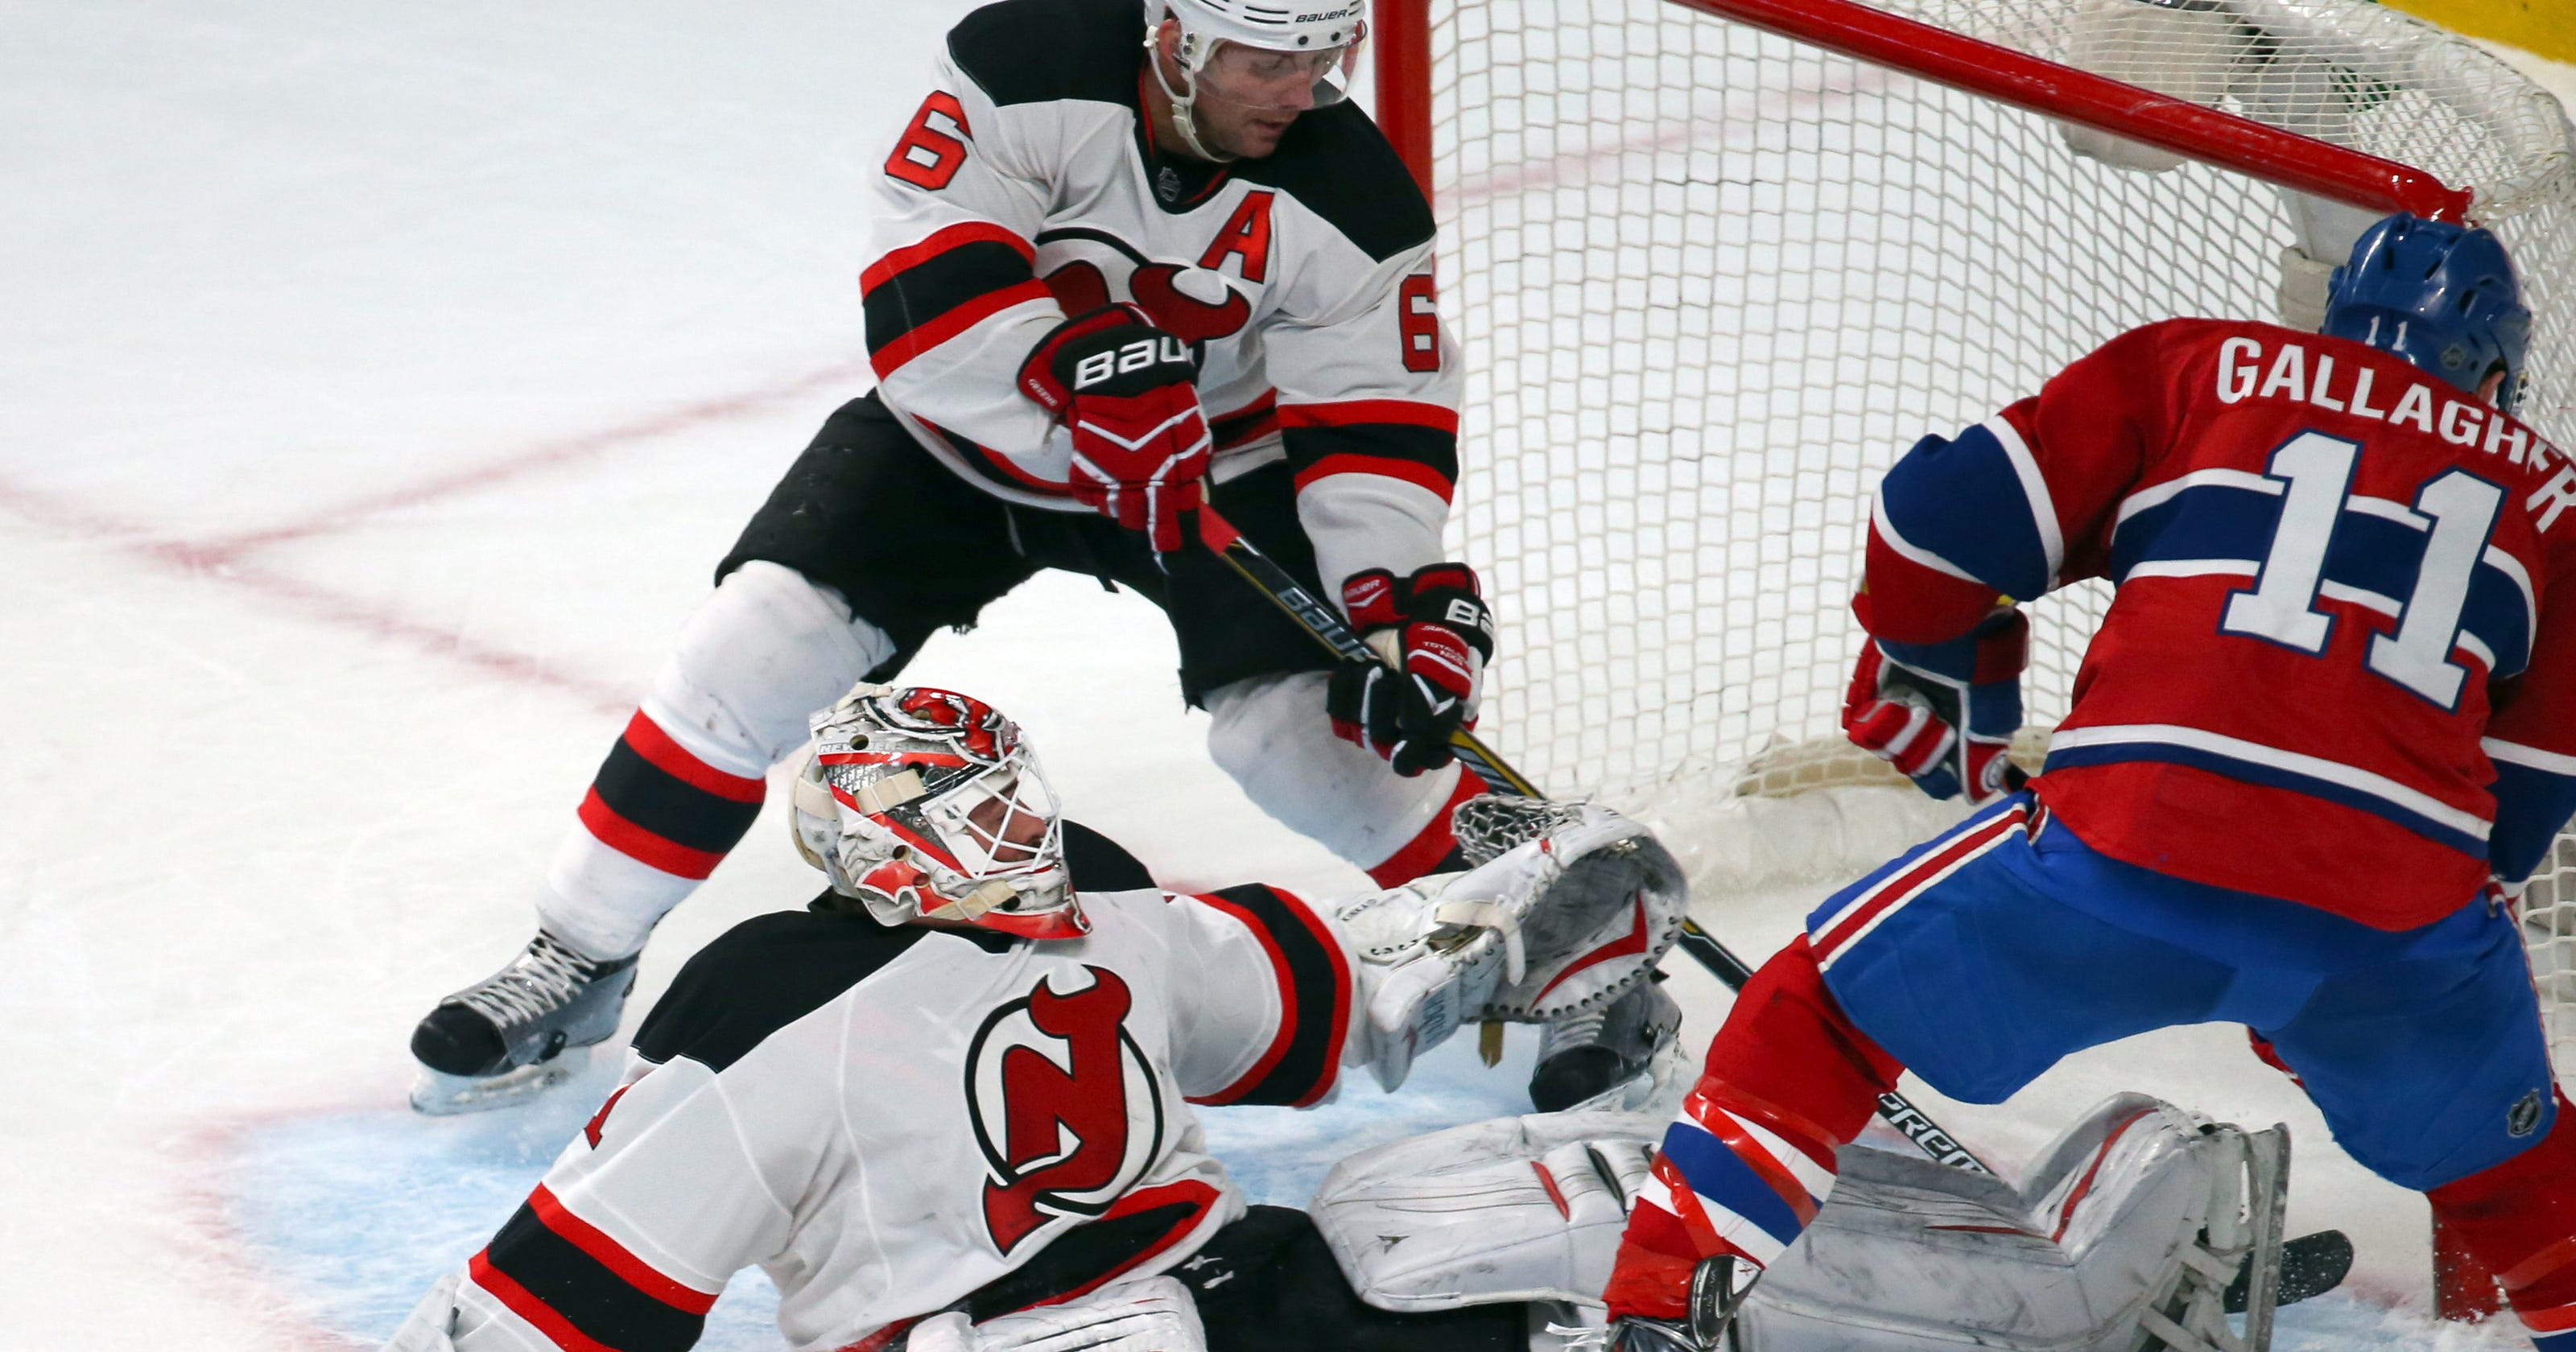 c5162502cc4 Plekanec, Weise lead Canadiens in 6-2 win over Devils